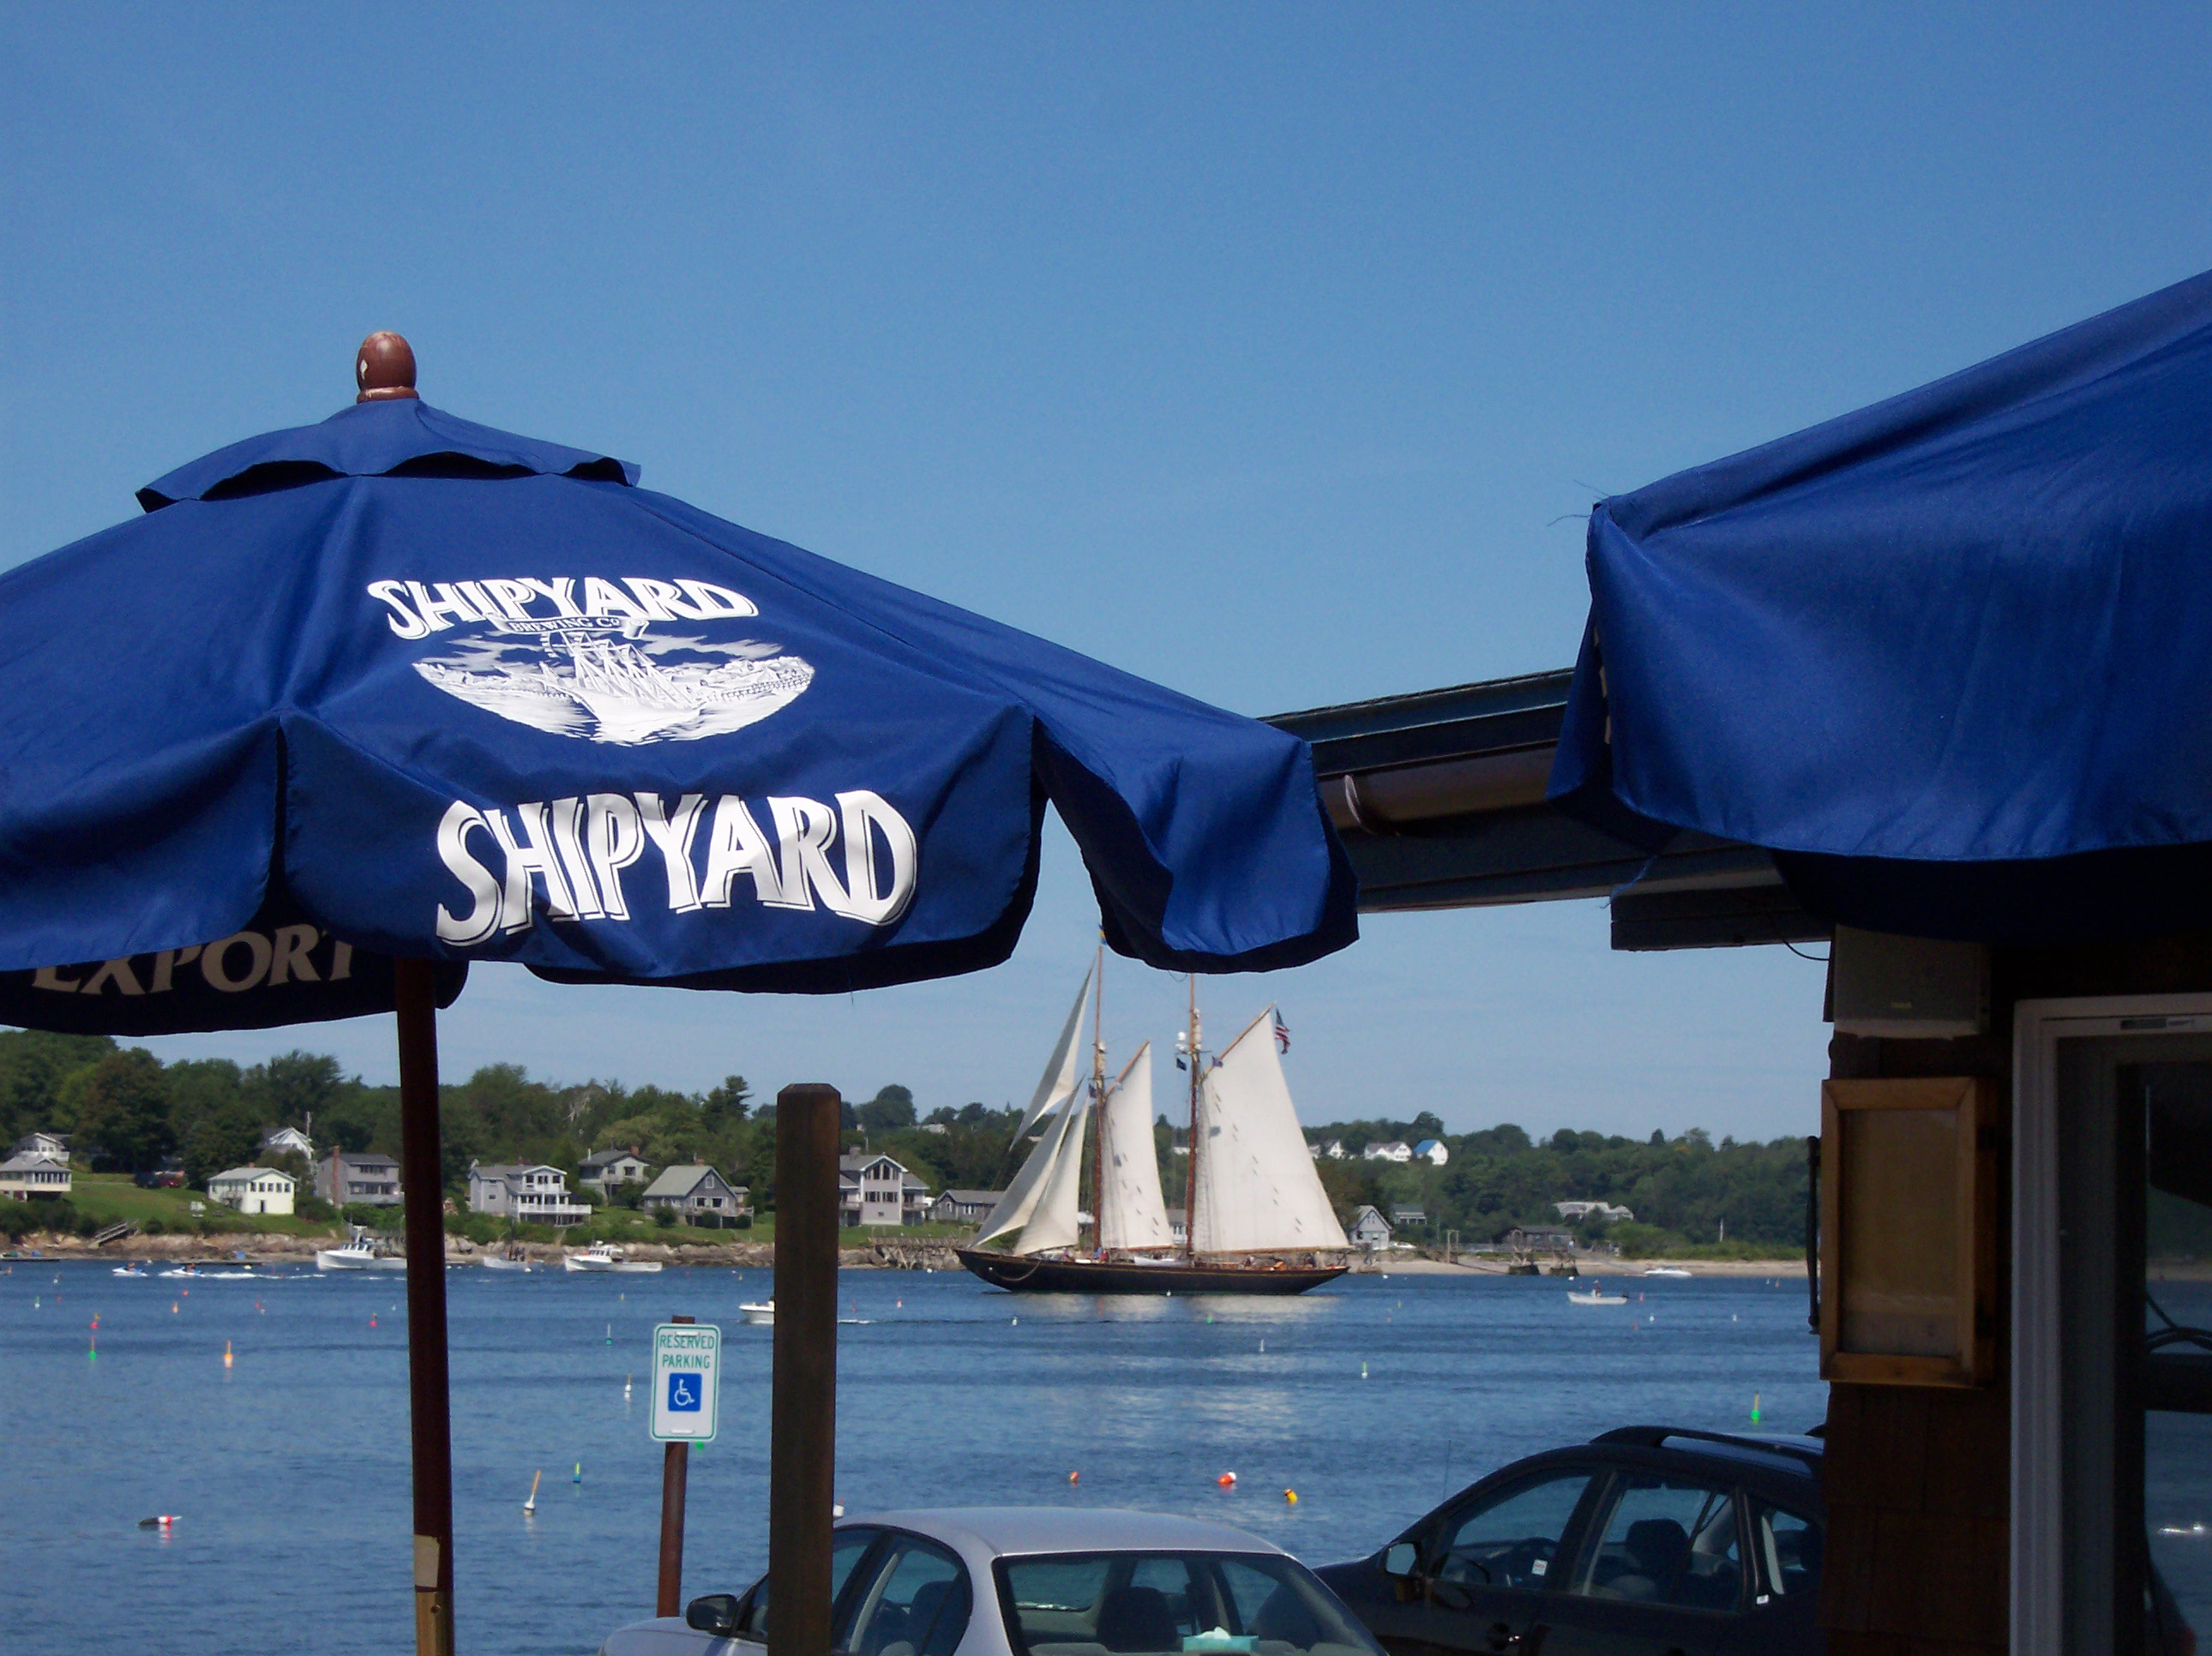 Dining in Harpswell Maine, restaurants and lobster pounds | Harpswell Business Association